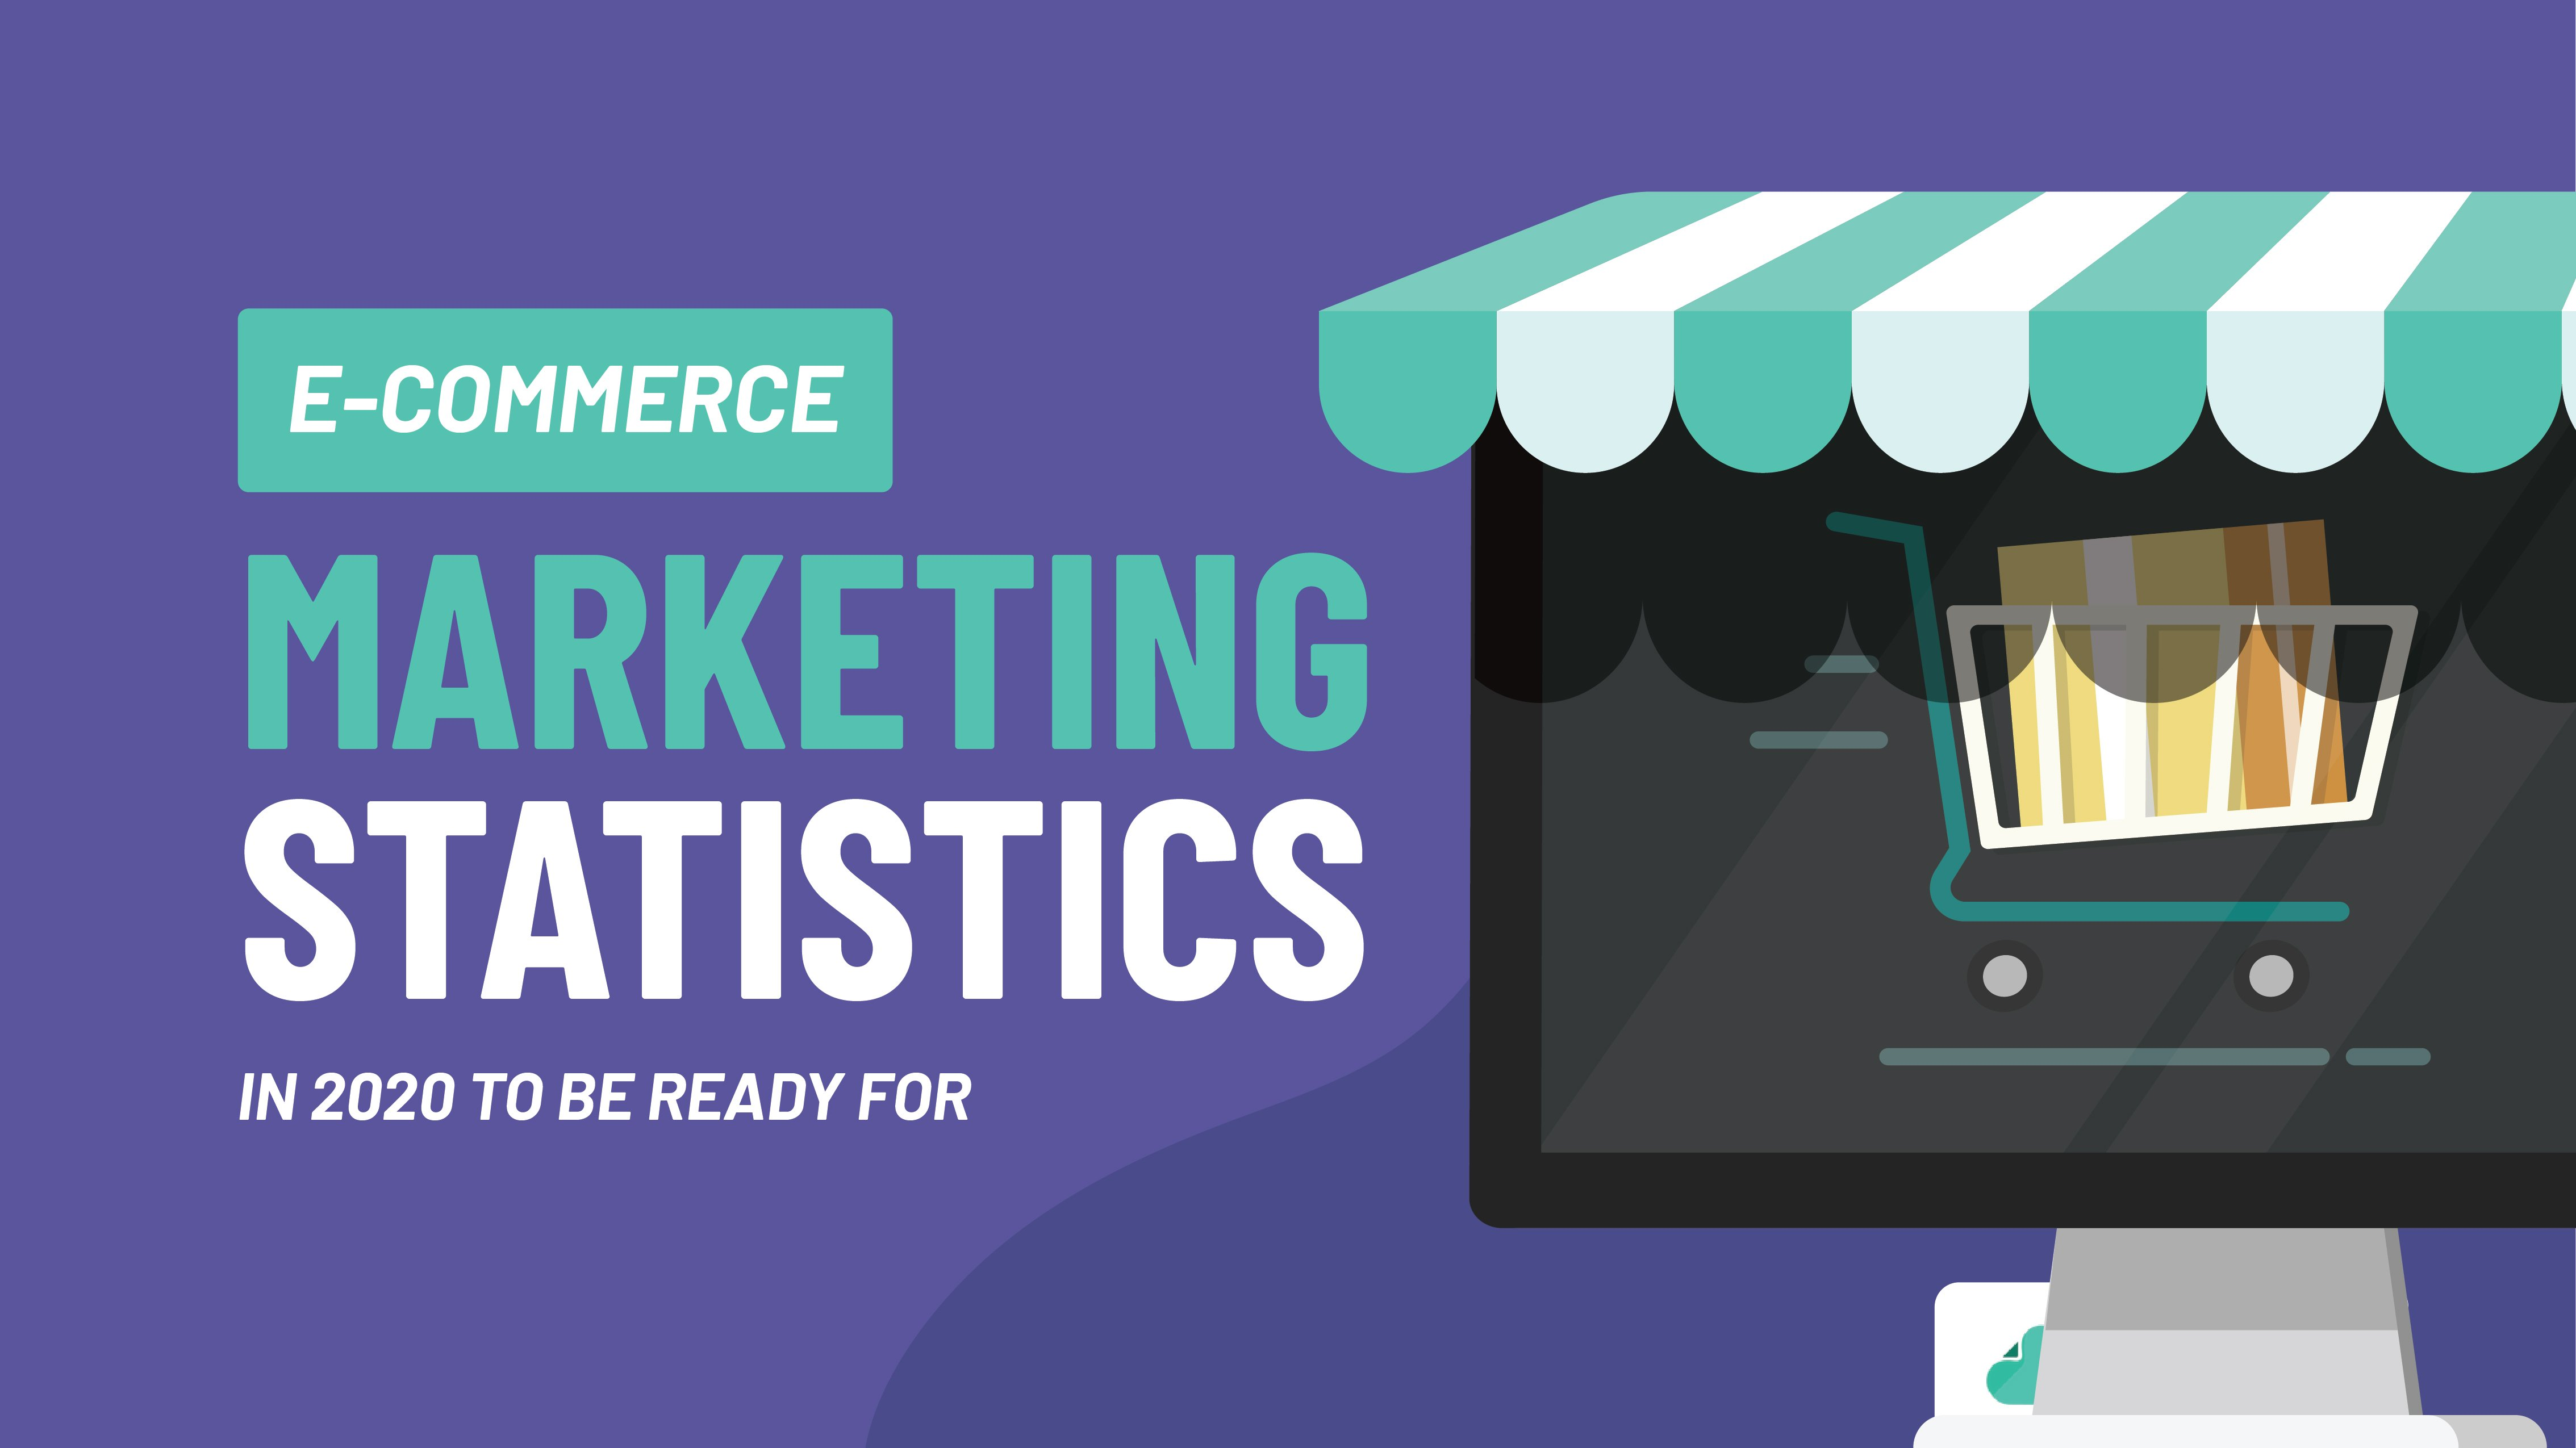 eCommerce Marketing Statistics in 2020